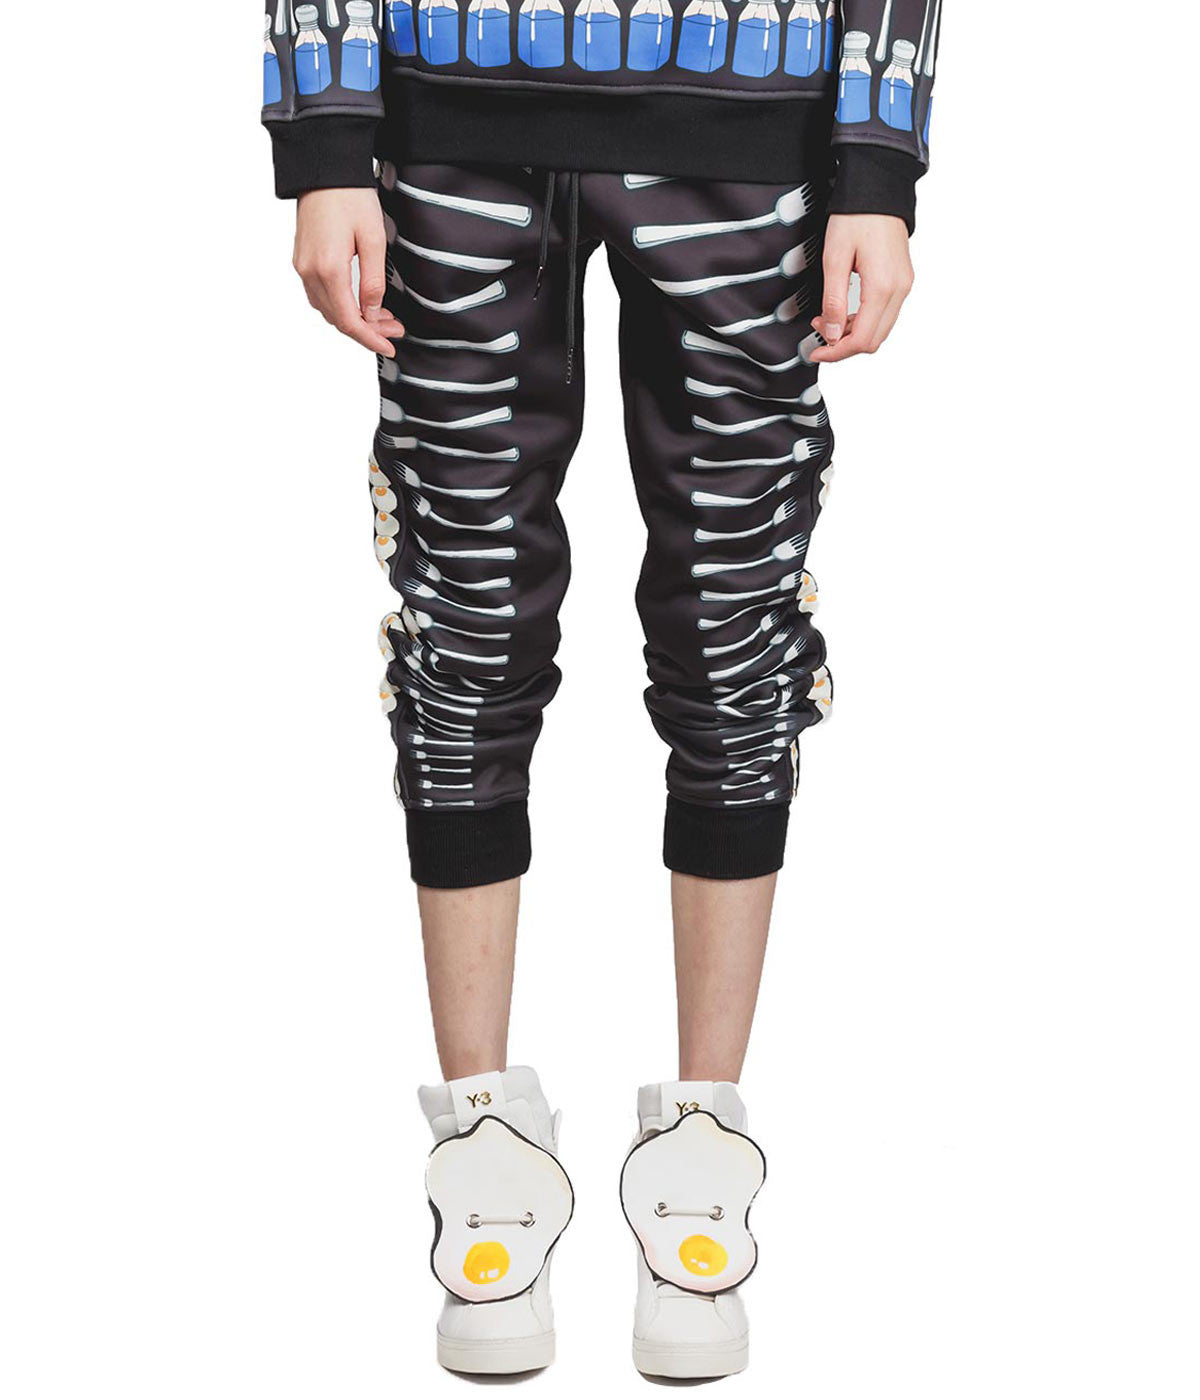 Printed Bonded Neoprene Sweatpants